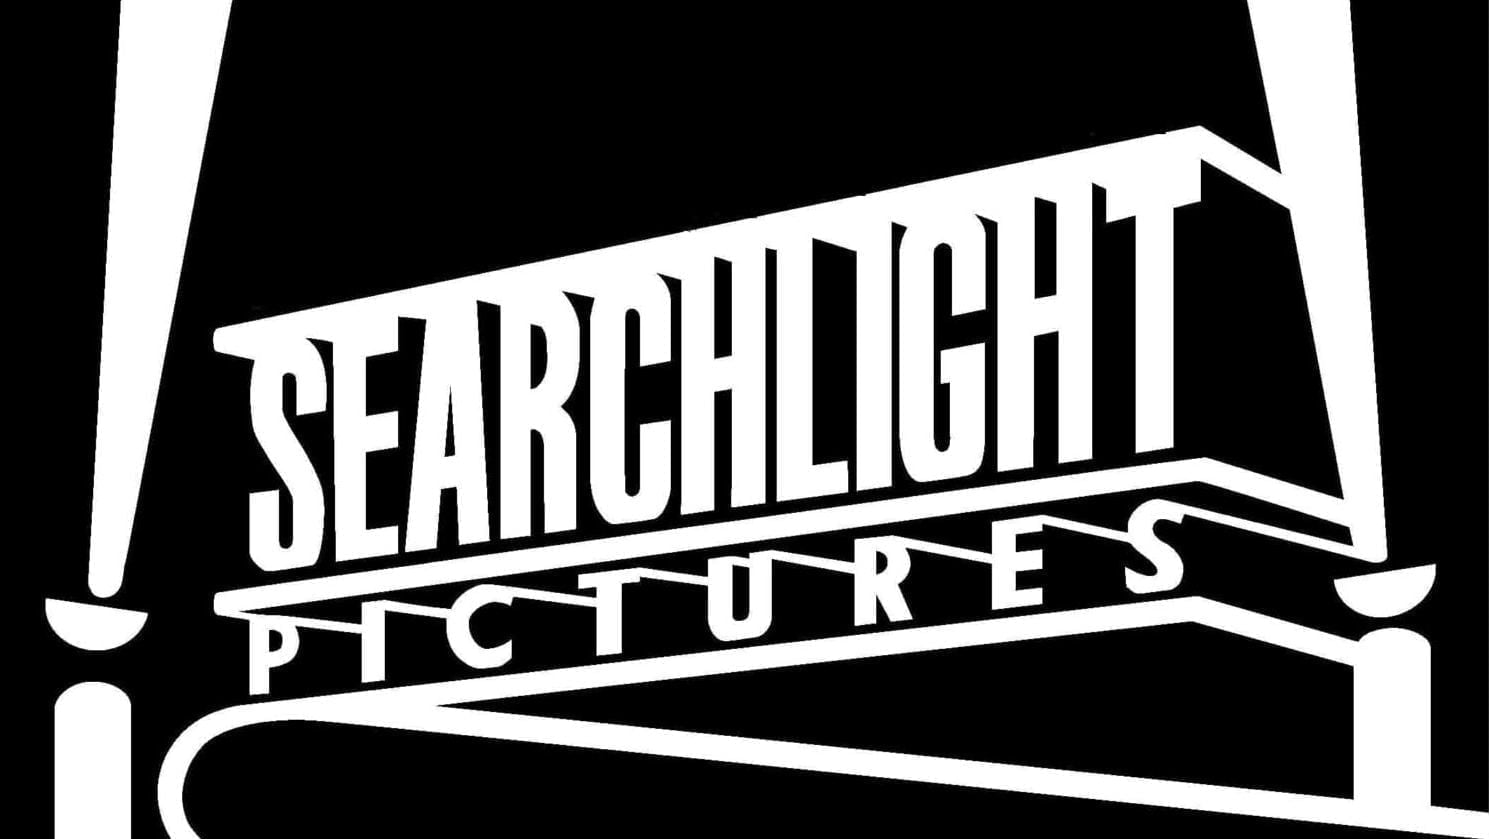 Searchlight Pictures 2